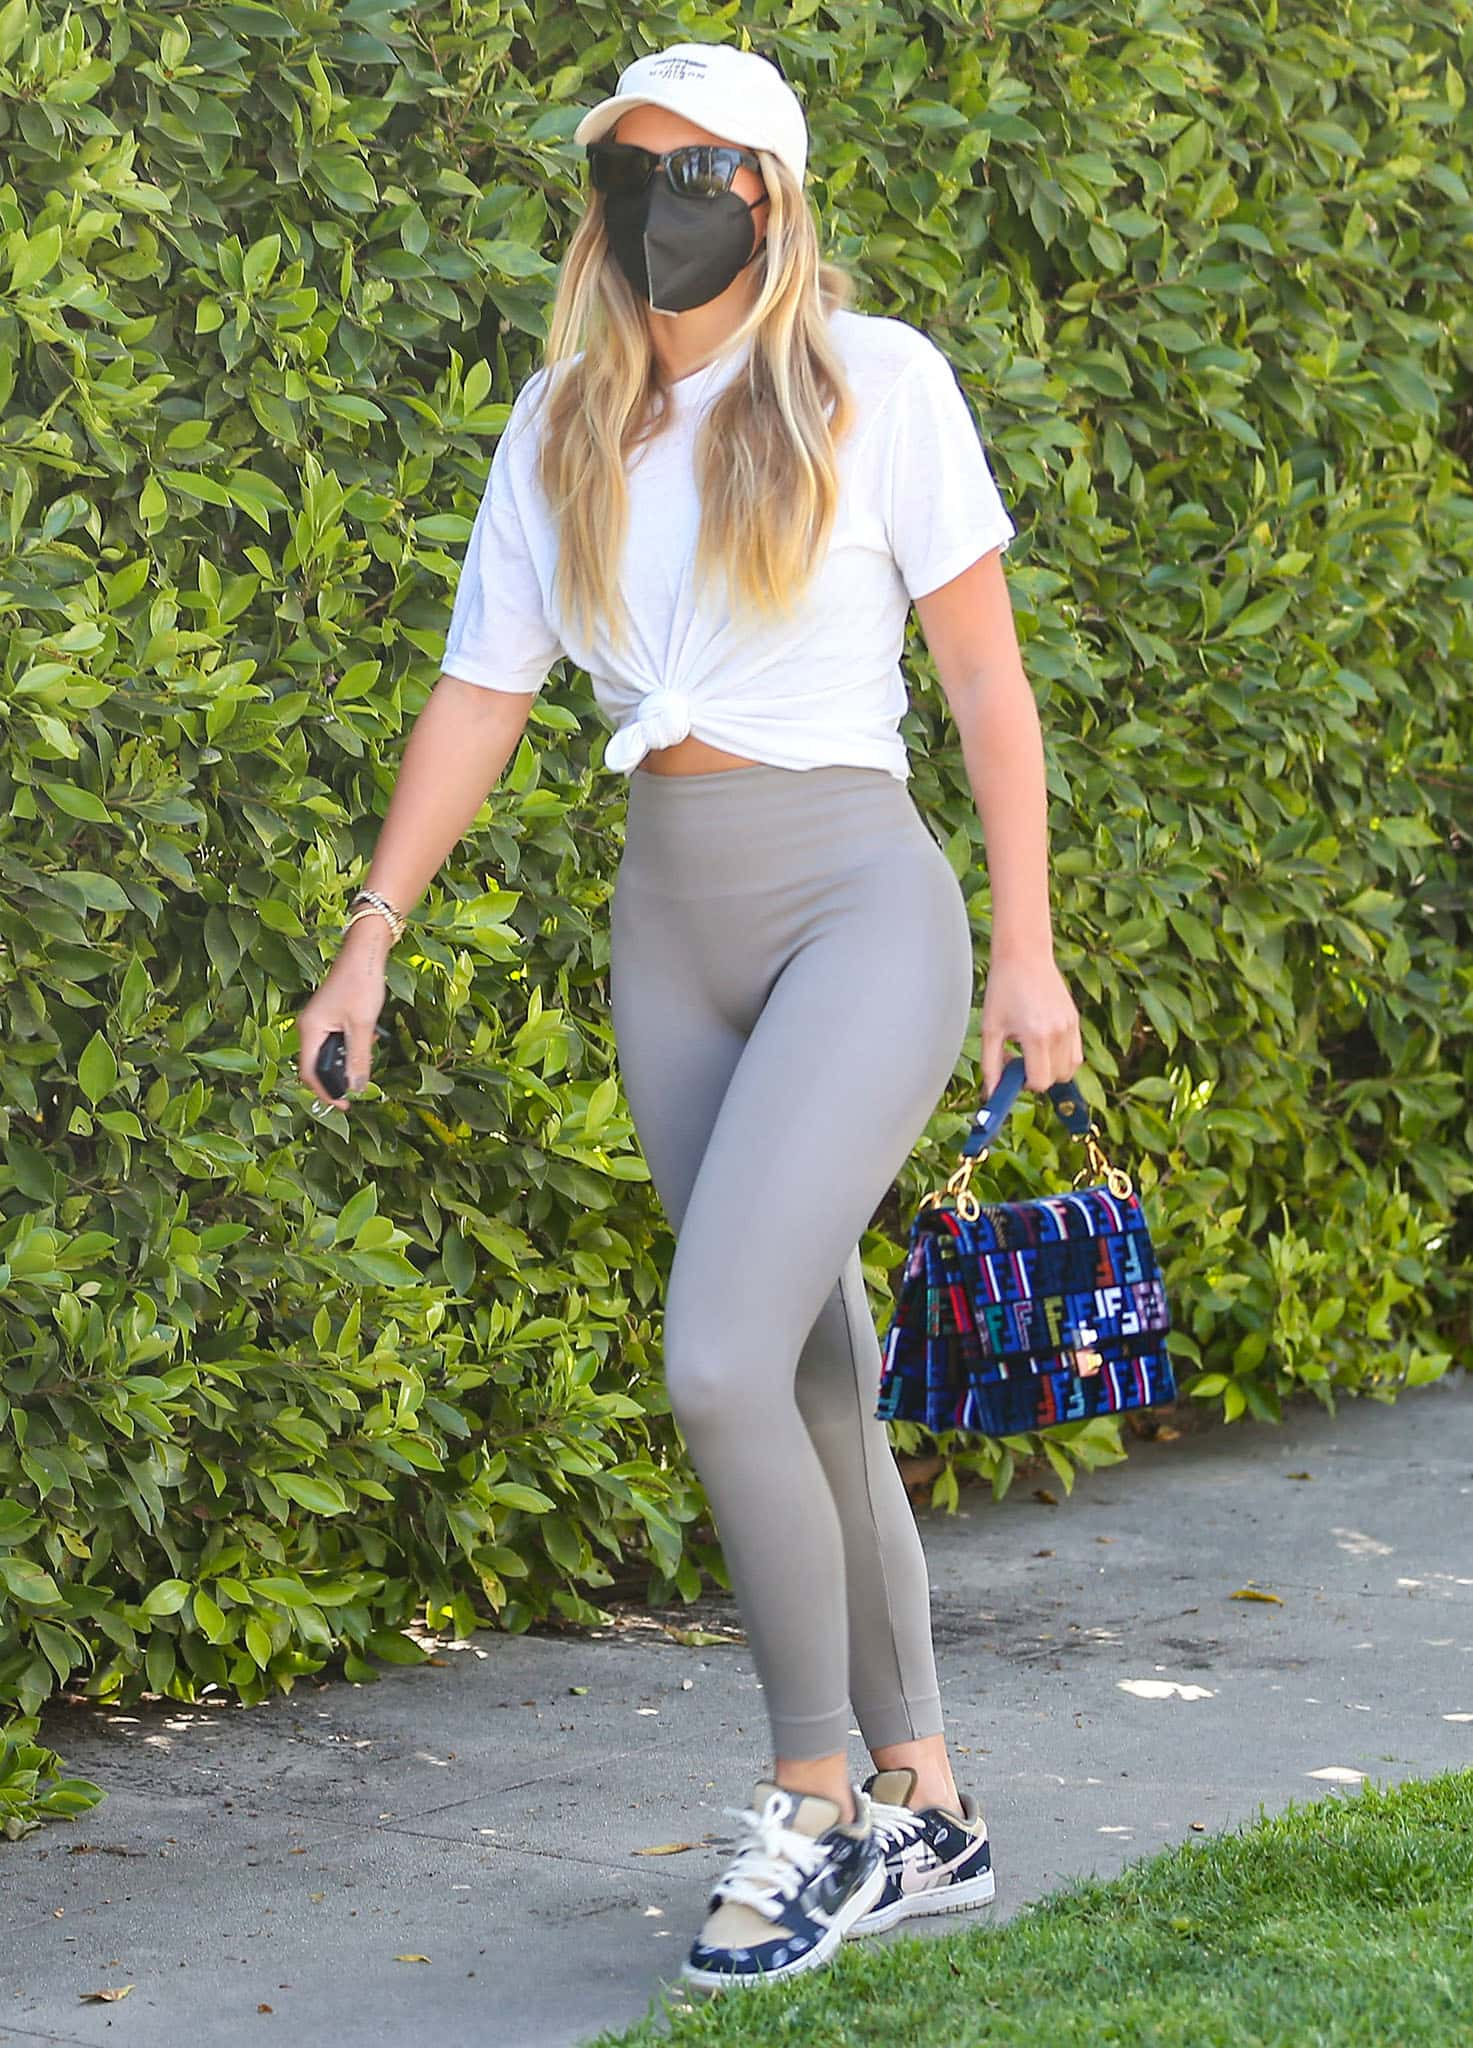 Sofia Richie shows off her figure in knotted white tee and Set Active x Madelyn Cline leggings